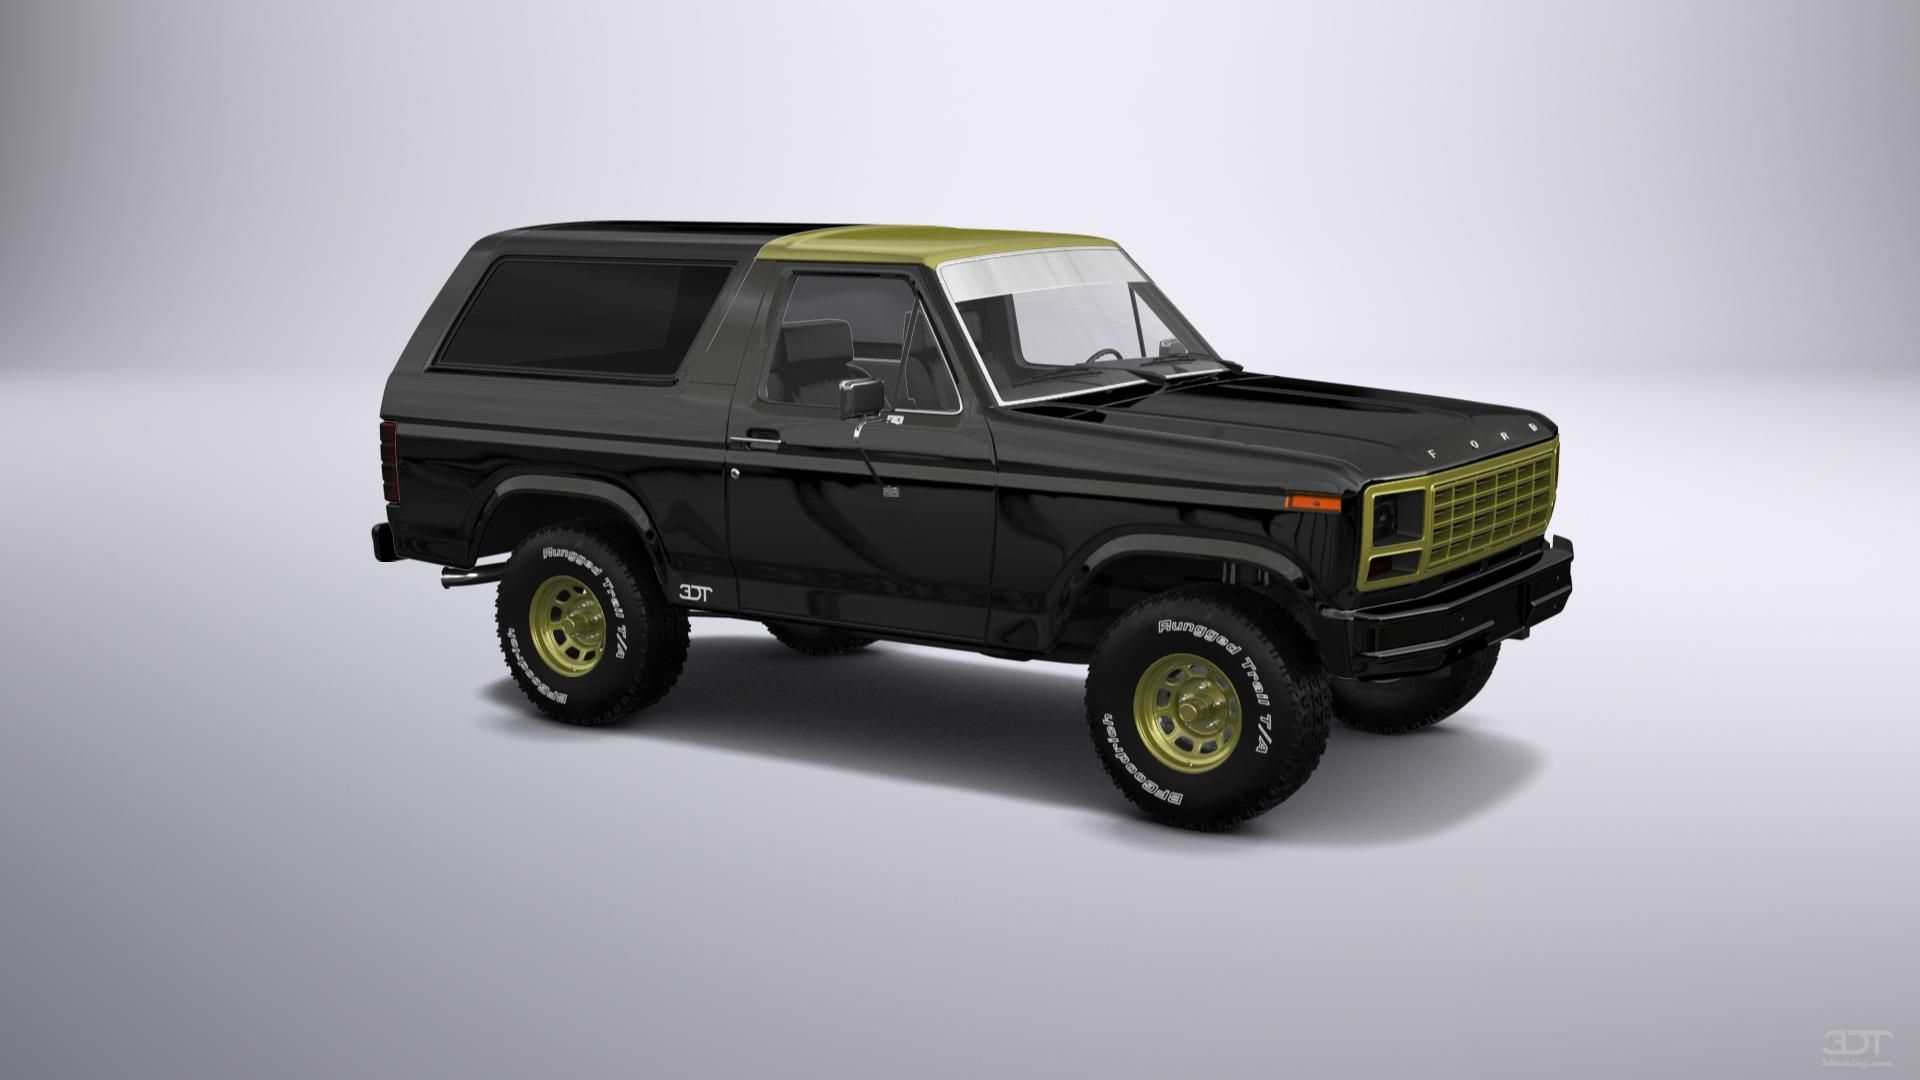 Checkout My Tuning Ford Bronco 1980 At 3dtuning 3dtuning